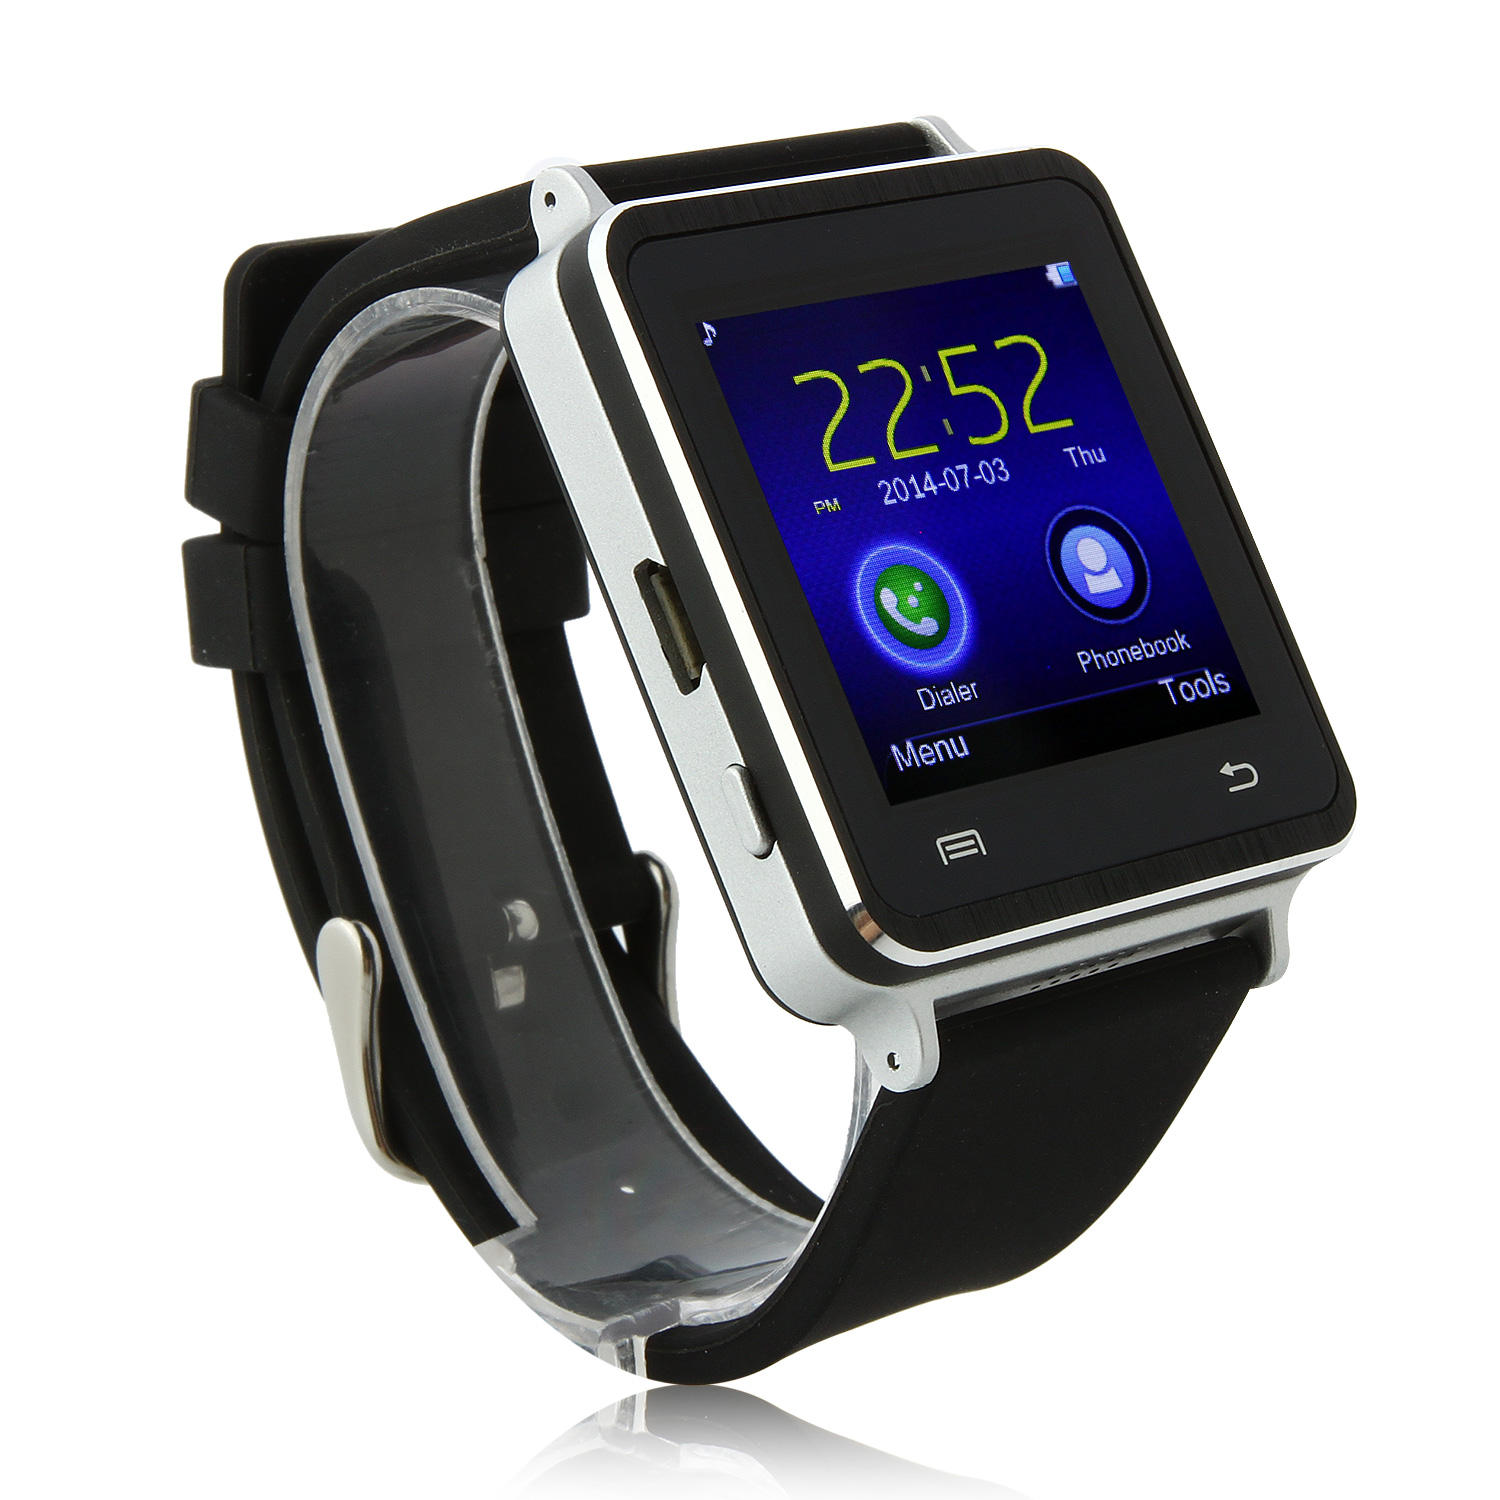 Iradish I7 Smart Bluetooth Watch Touch Screen for Android Devices 1.54 Inch - Silver